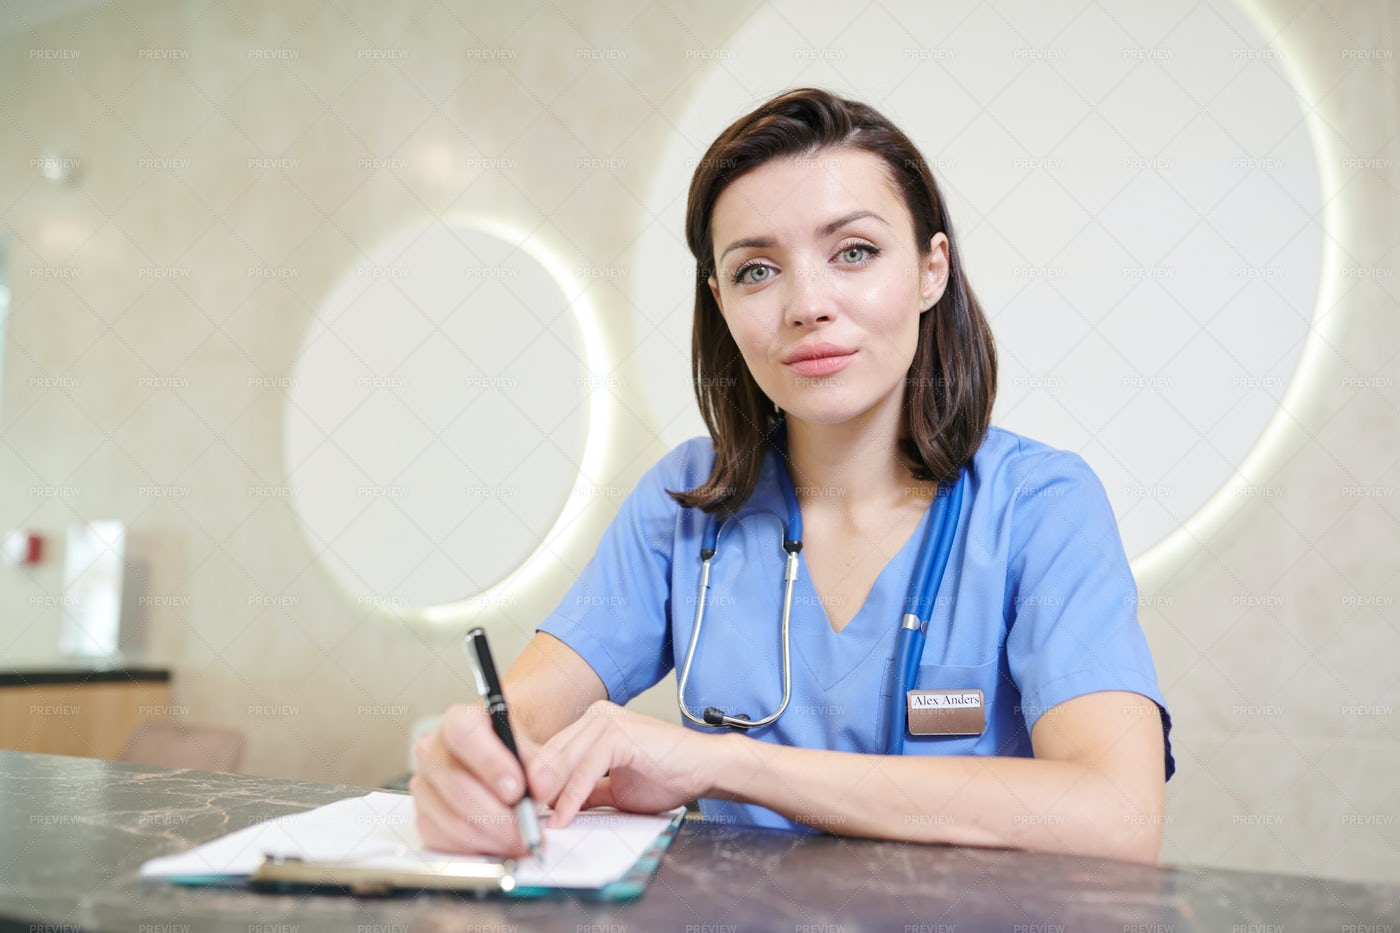 Female Doctor At Desk: Stock Photos